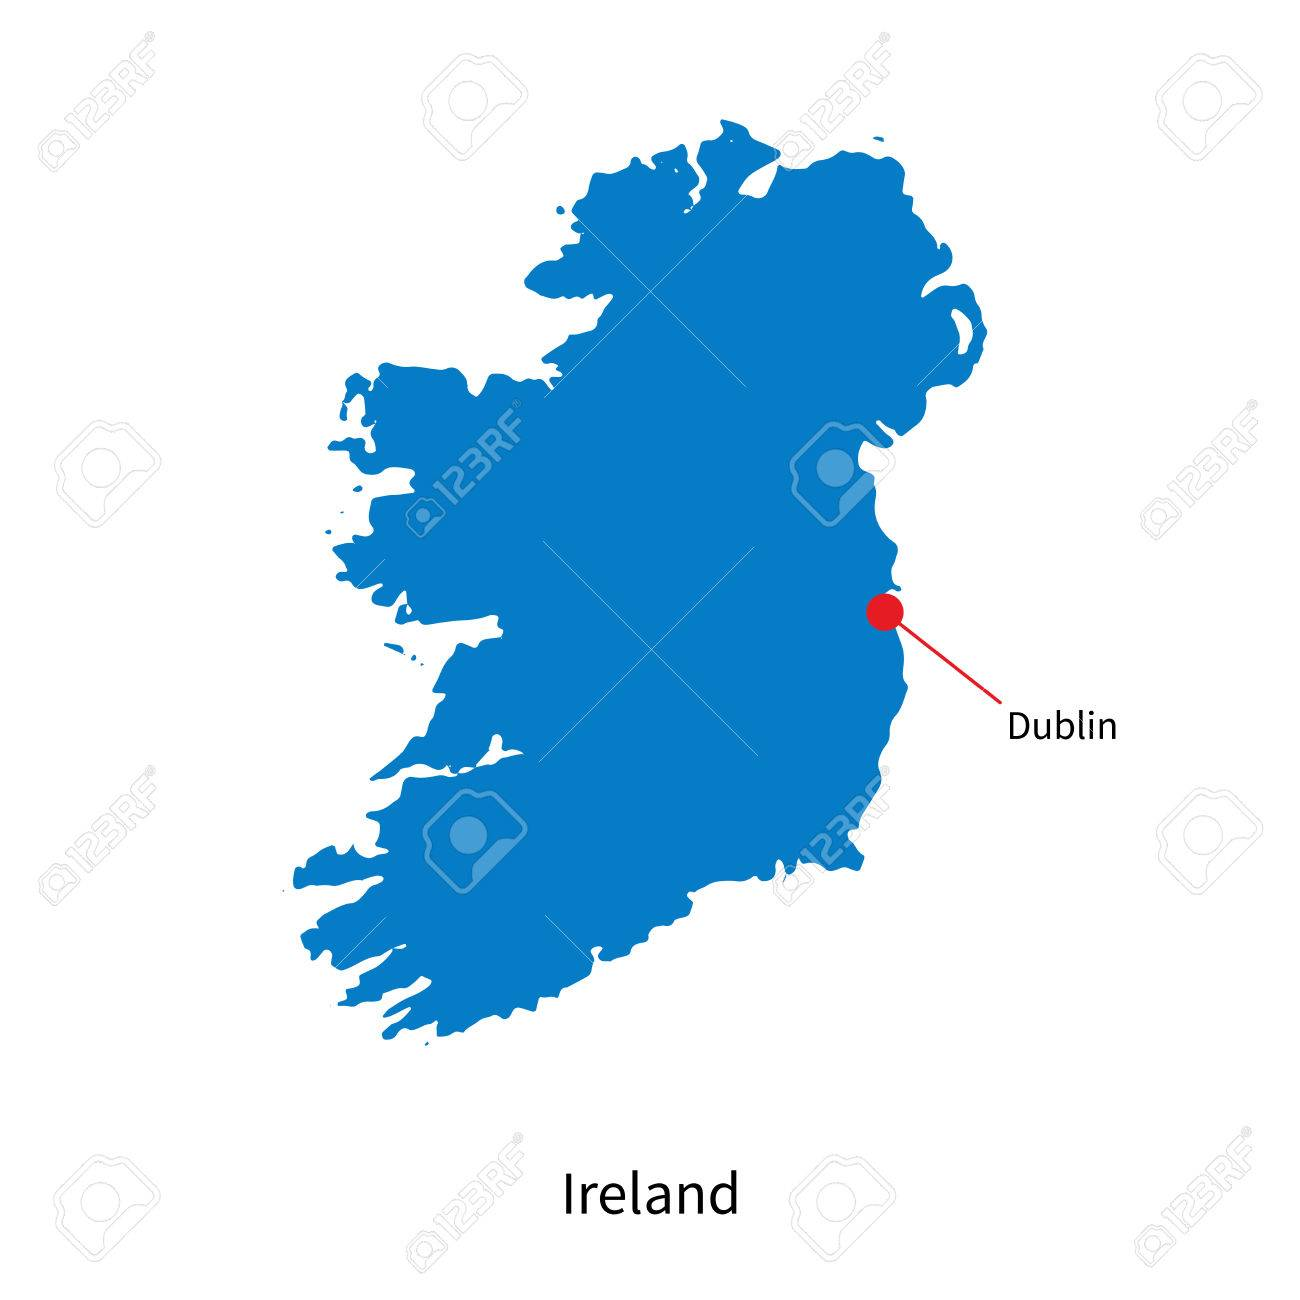 Dublin On Map Of Ireland.Detailed Map Of Ireland And Capital City Dublin